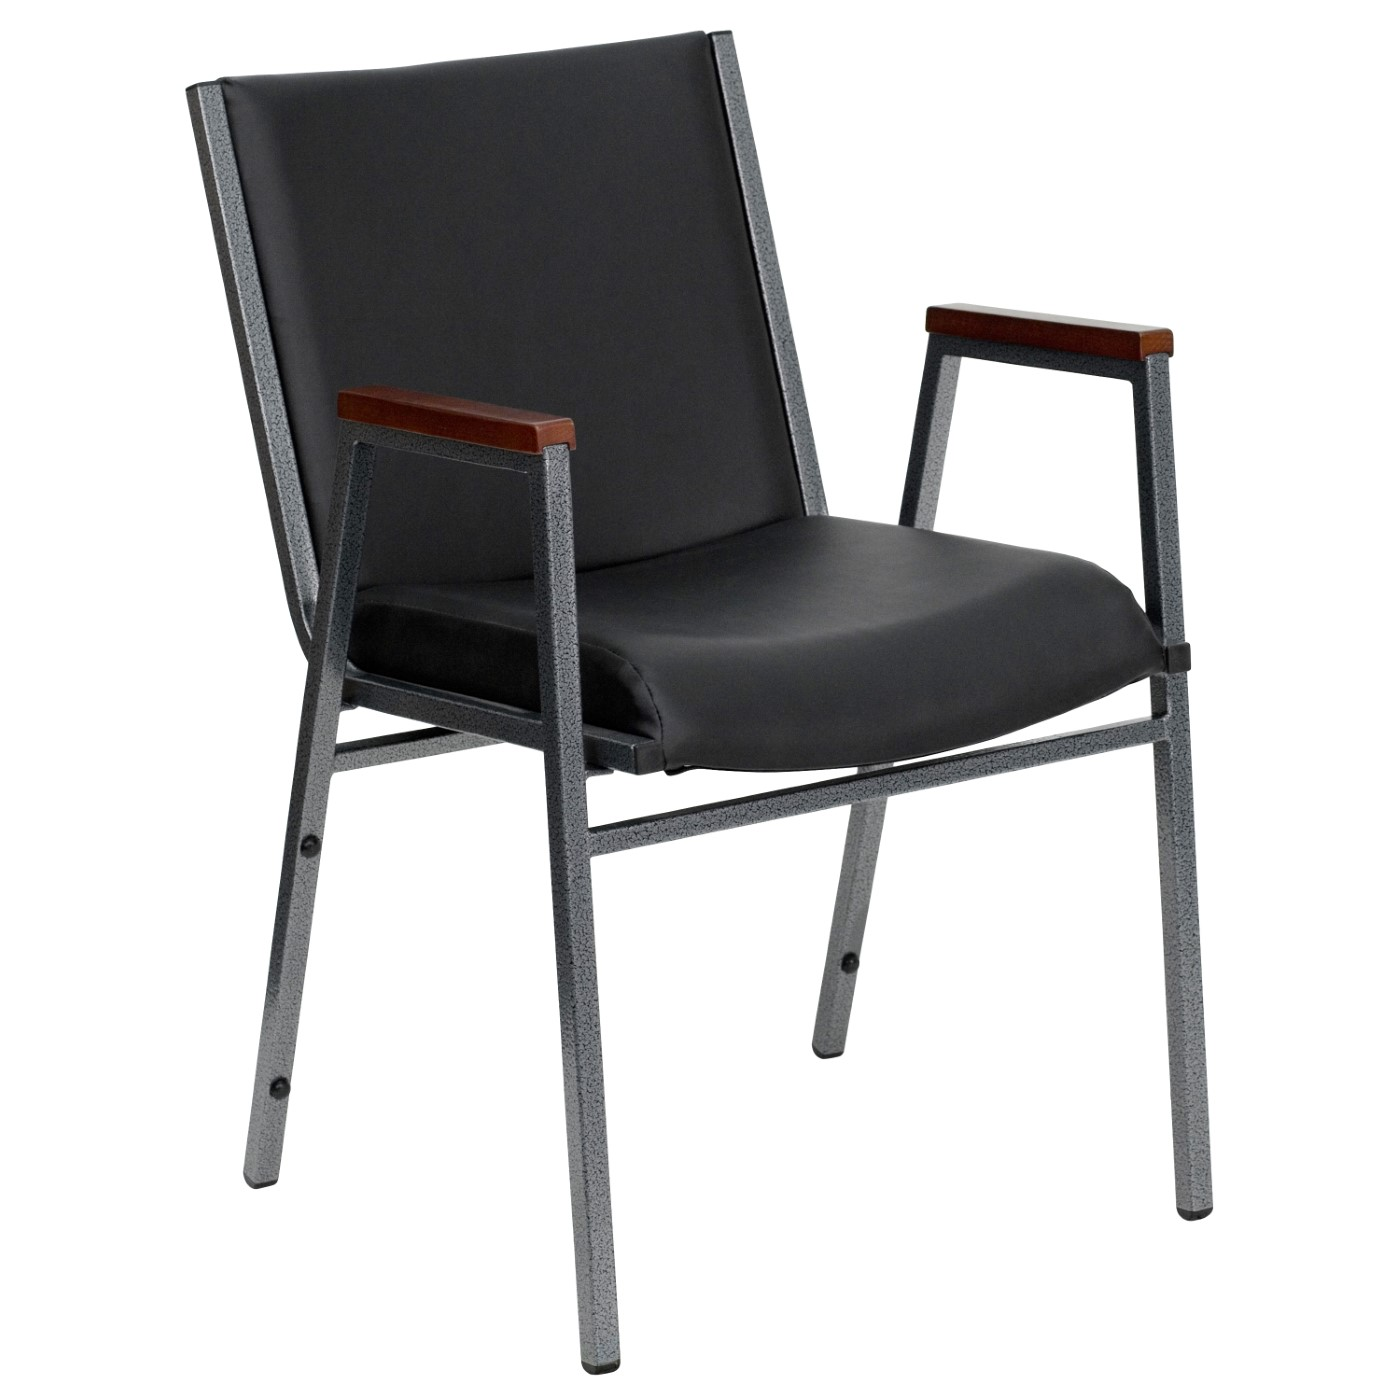 TOUGH ENOUGH Series Heavy Duty Black Vinyl Stack Chair with Arms